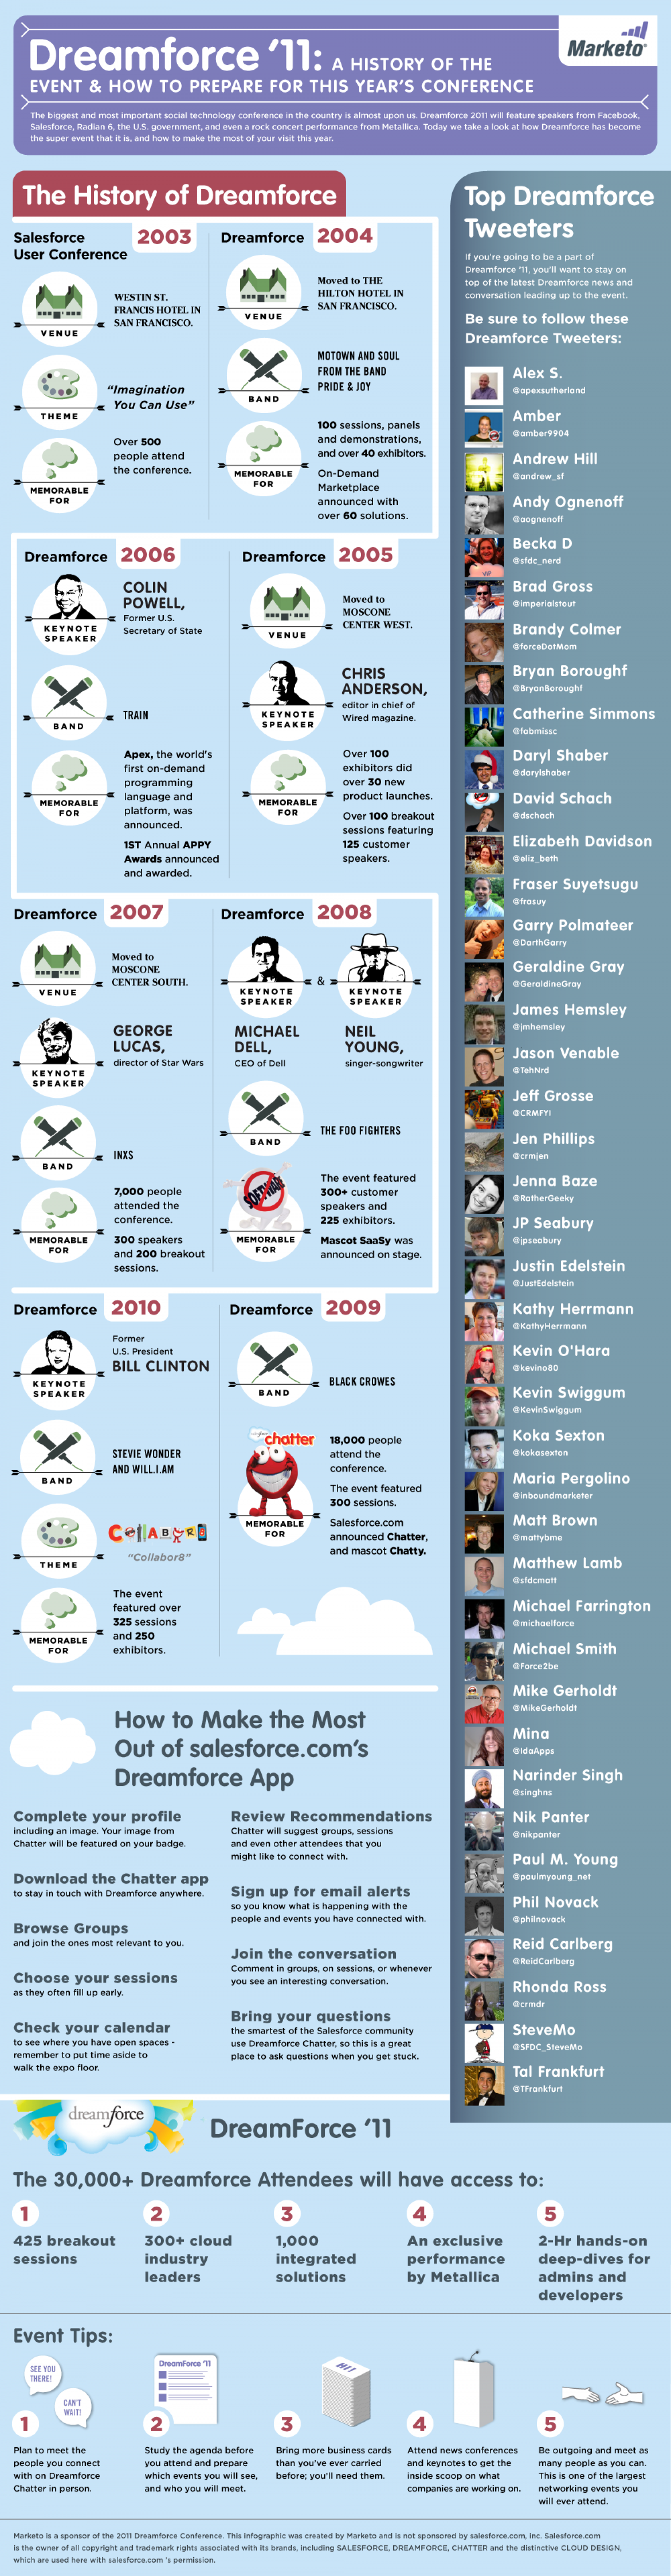 Dreamforce '11 Infographic